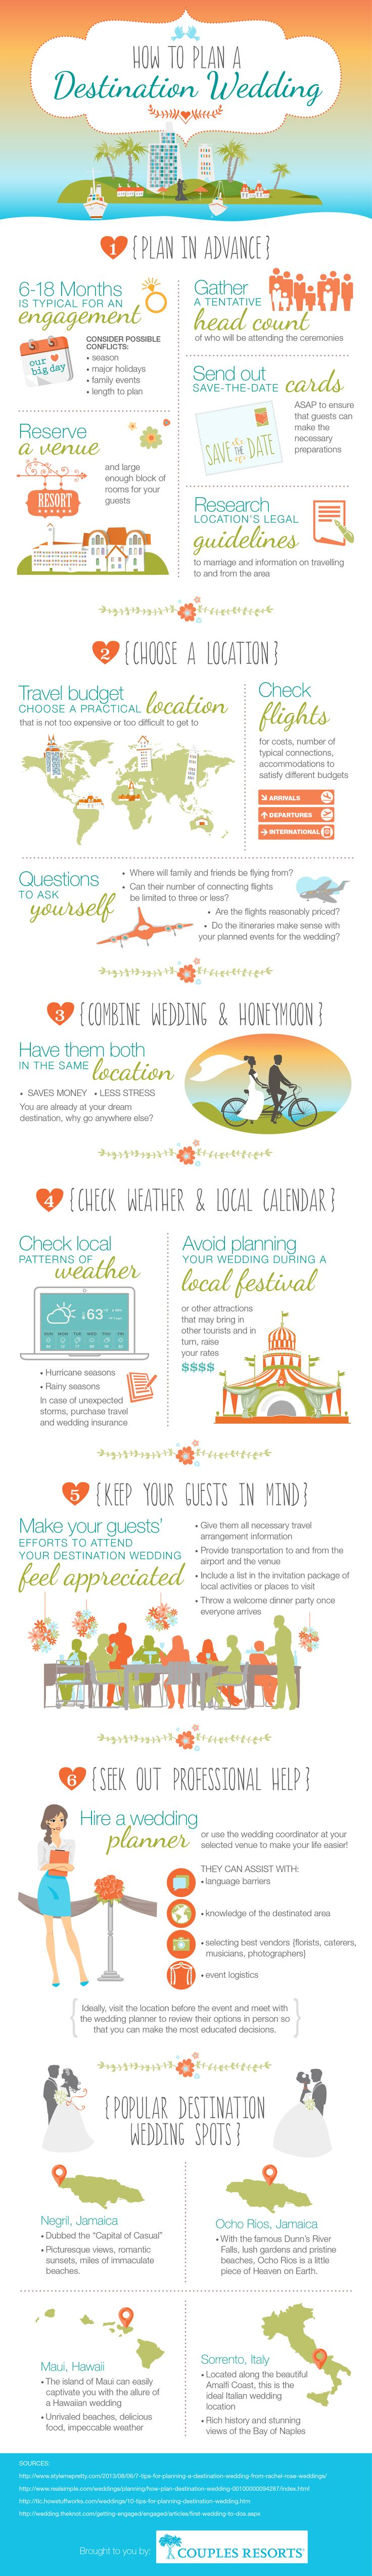 All the things you need to know for a wedding abroad! This wedding infographic was created by dezinegirl for IMI's client Couples Resort.